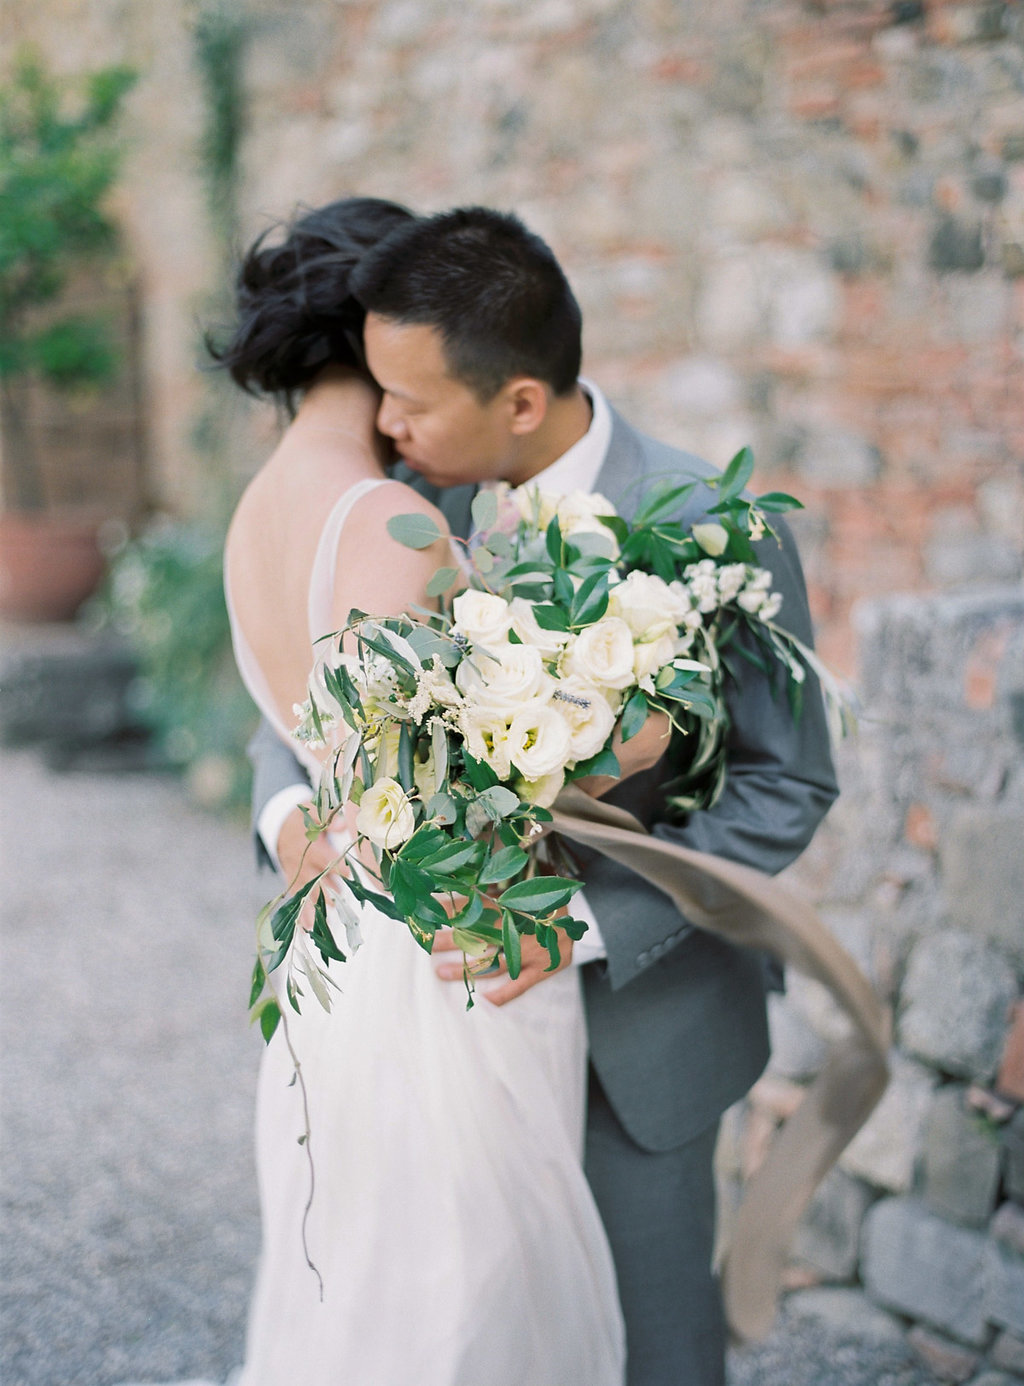 romantic wedding portraits - photo by Katie Grant Photography https://ruffledblog.com/classically-beautiful-intimate-wedding-in-tuscany